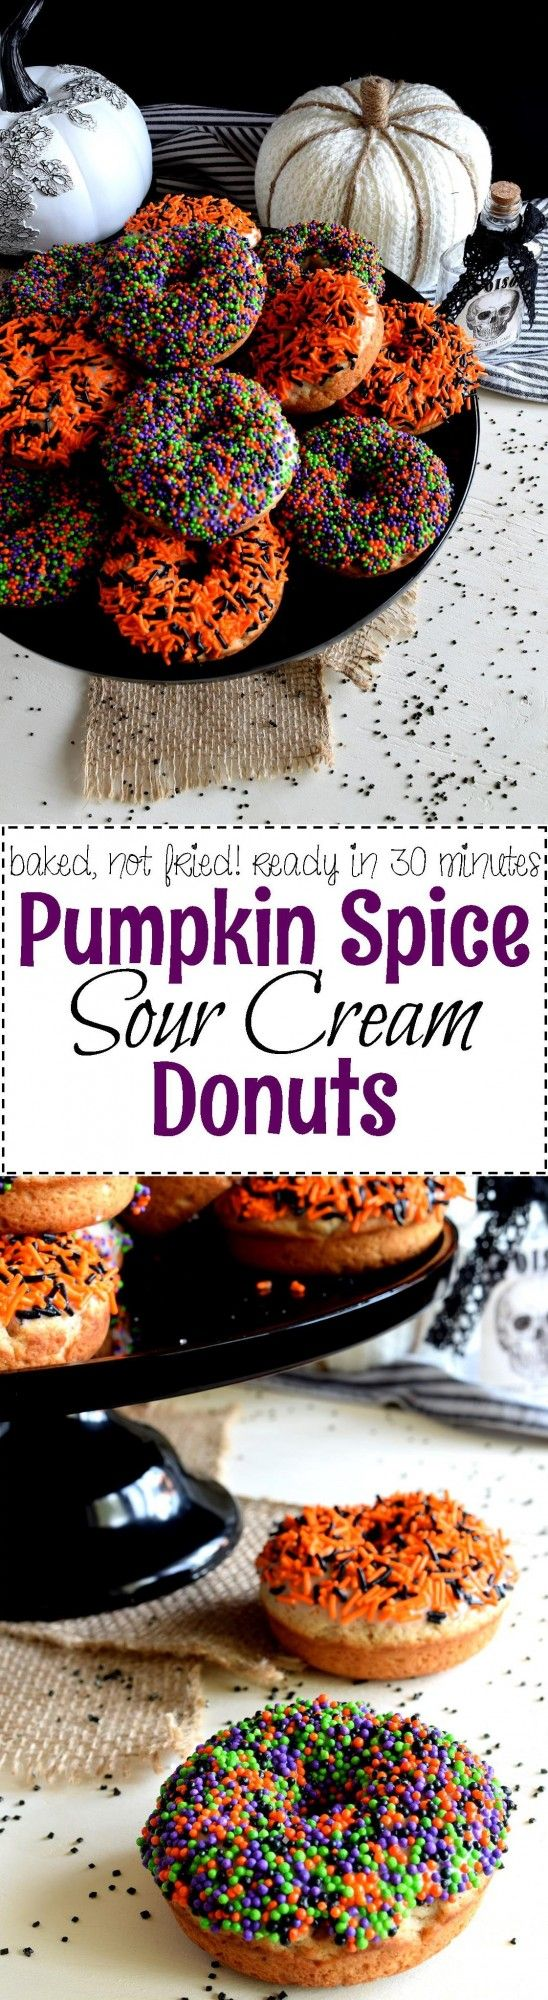 Pumpkin Spice Sour Cream Donuts - Homemade donuts don't have to be complicated.  Take these Pumpkin Spice Sour Cream Donuts, for example; they are moist and flavourful and take very little effort.  With or without candy sprinkles, these are the perfect donuts for any occasion.